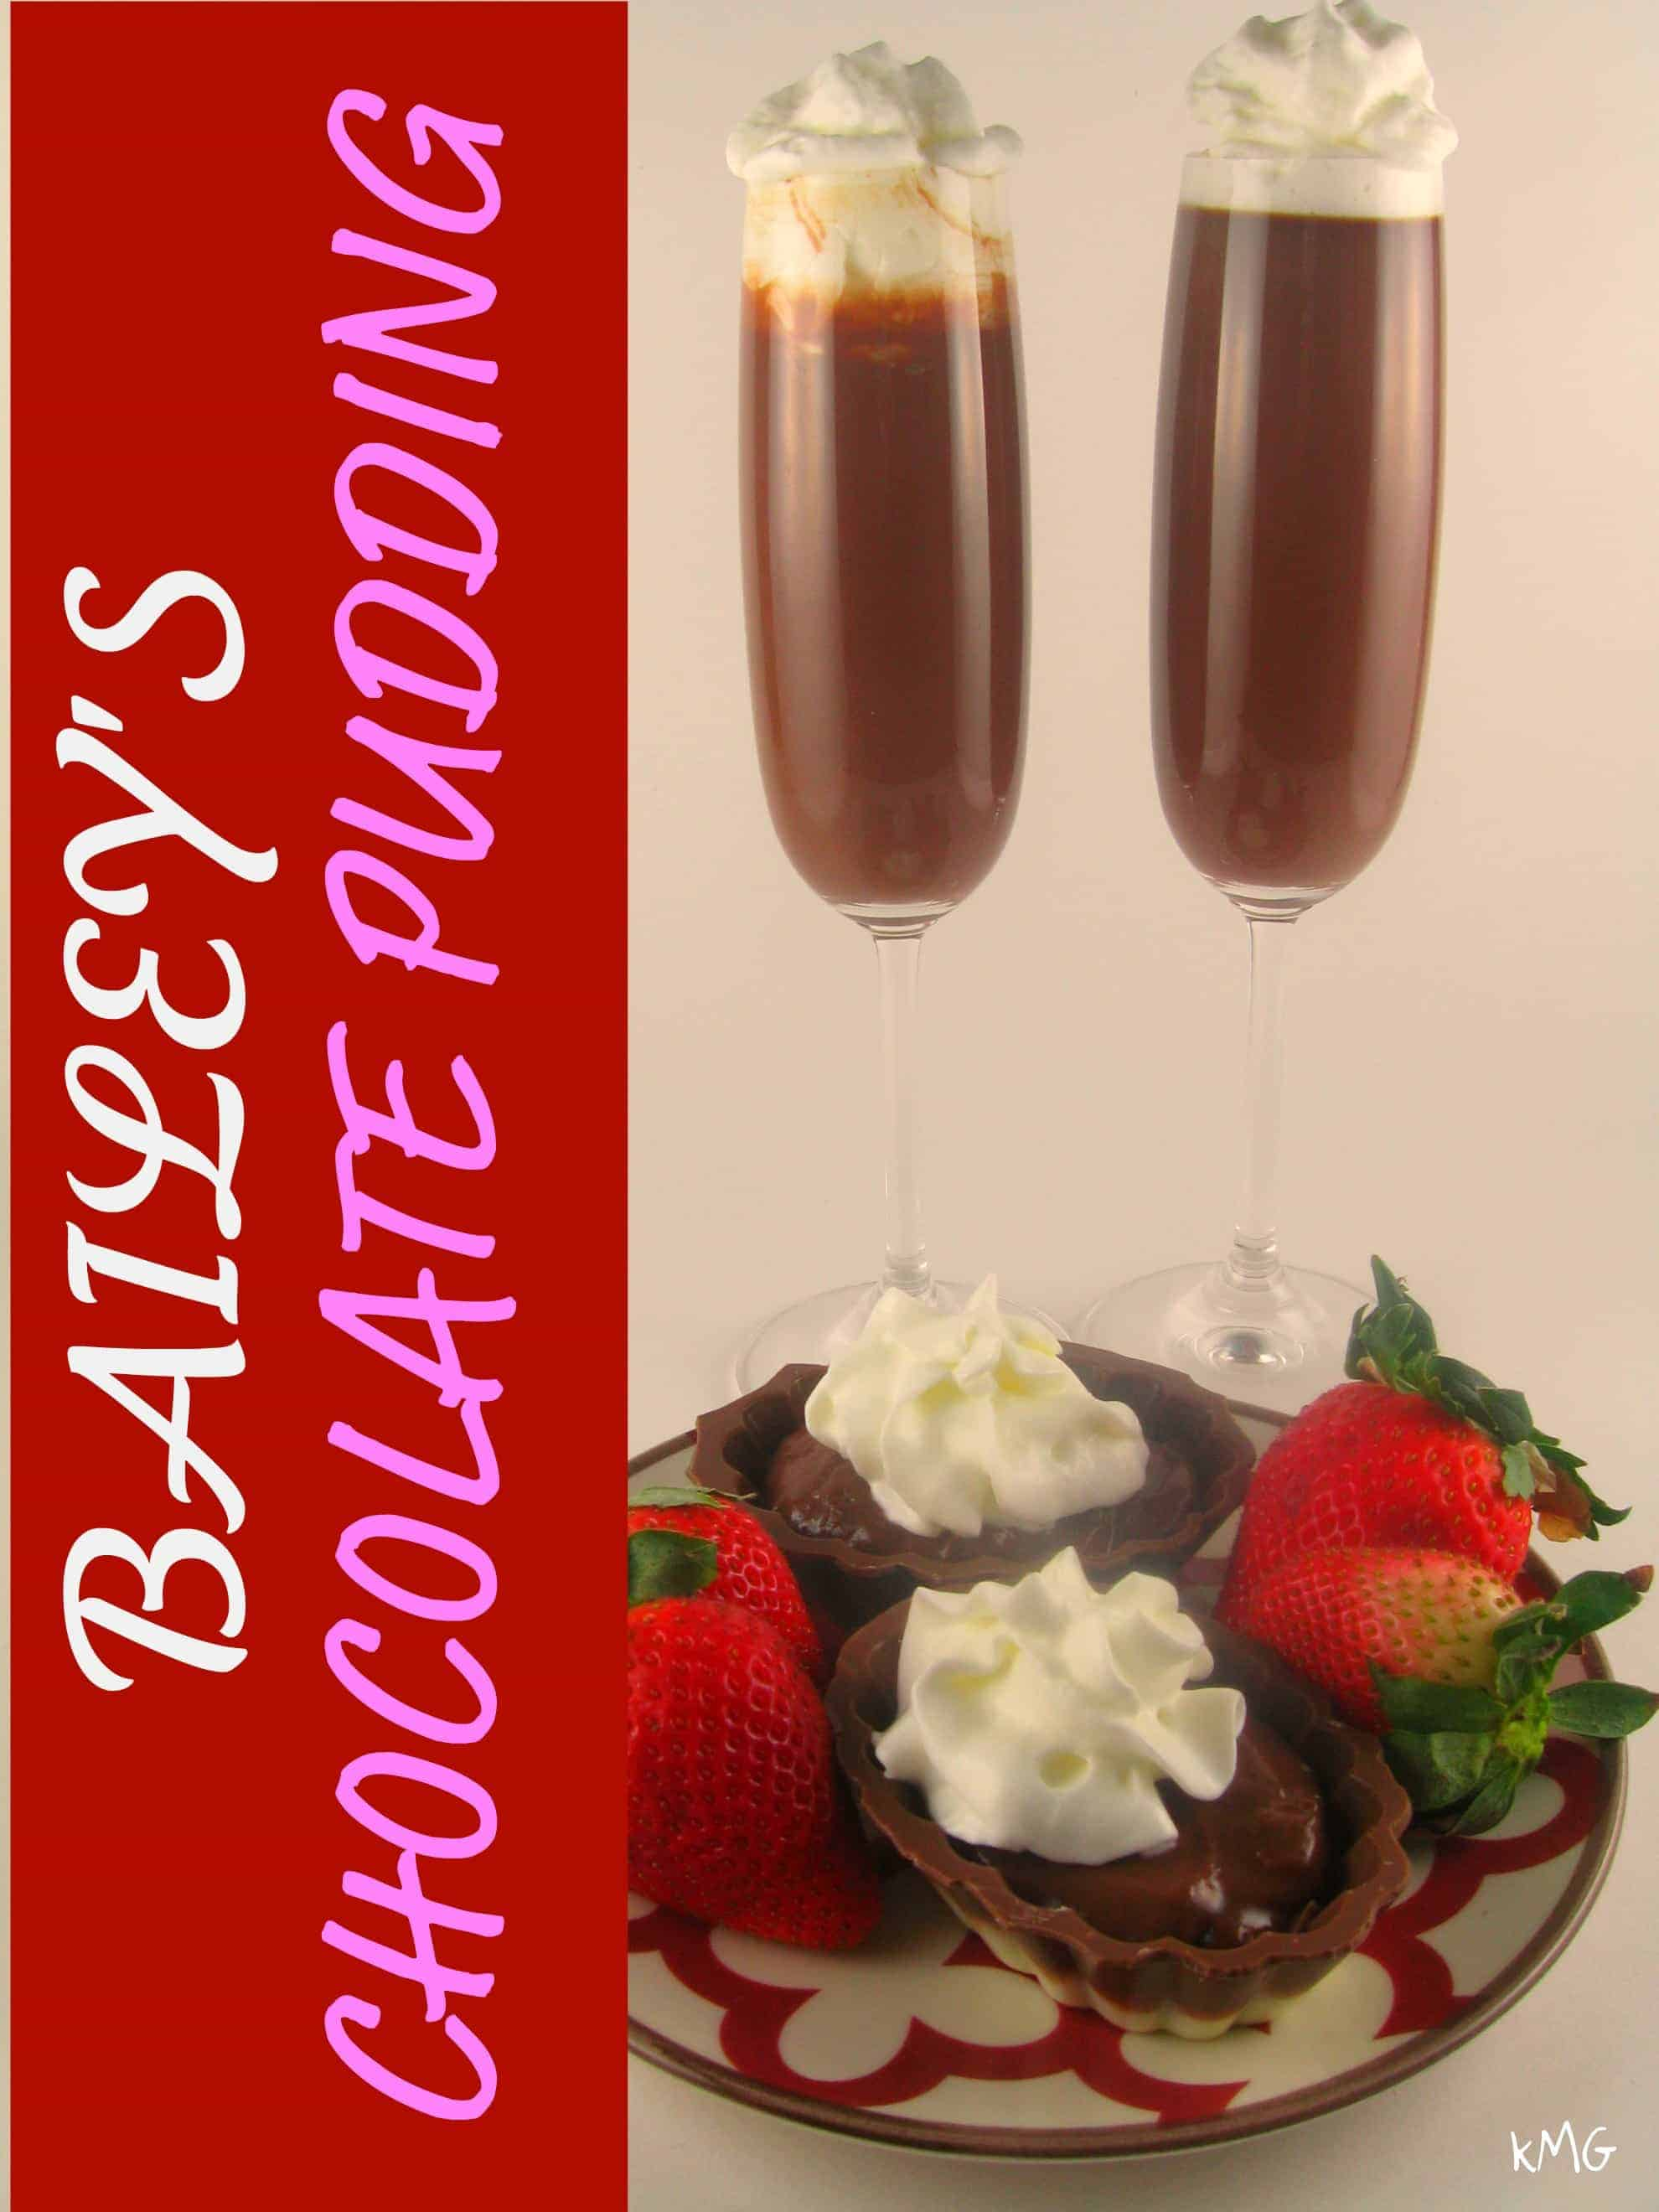 Bailey's Chocolate Pudding